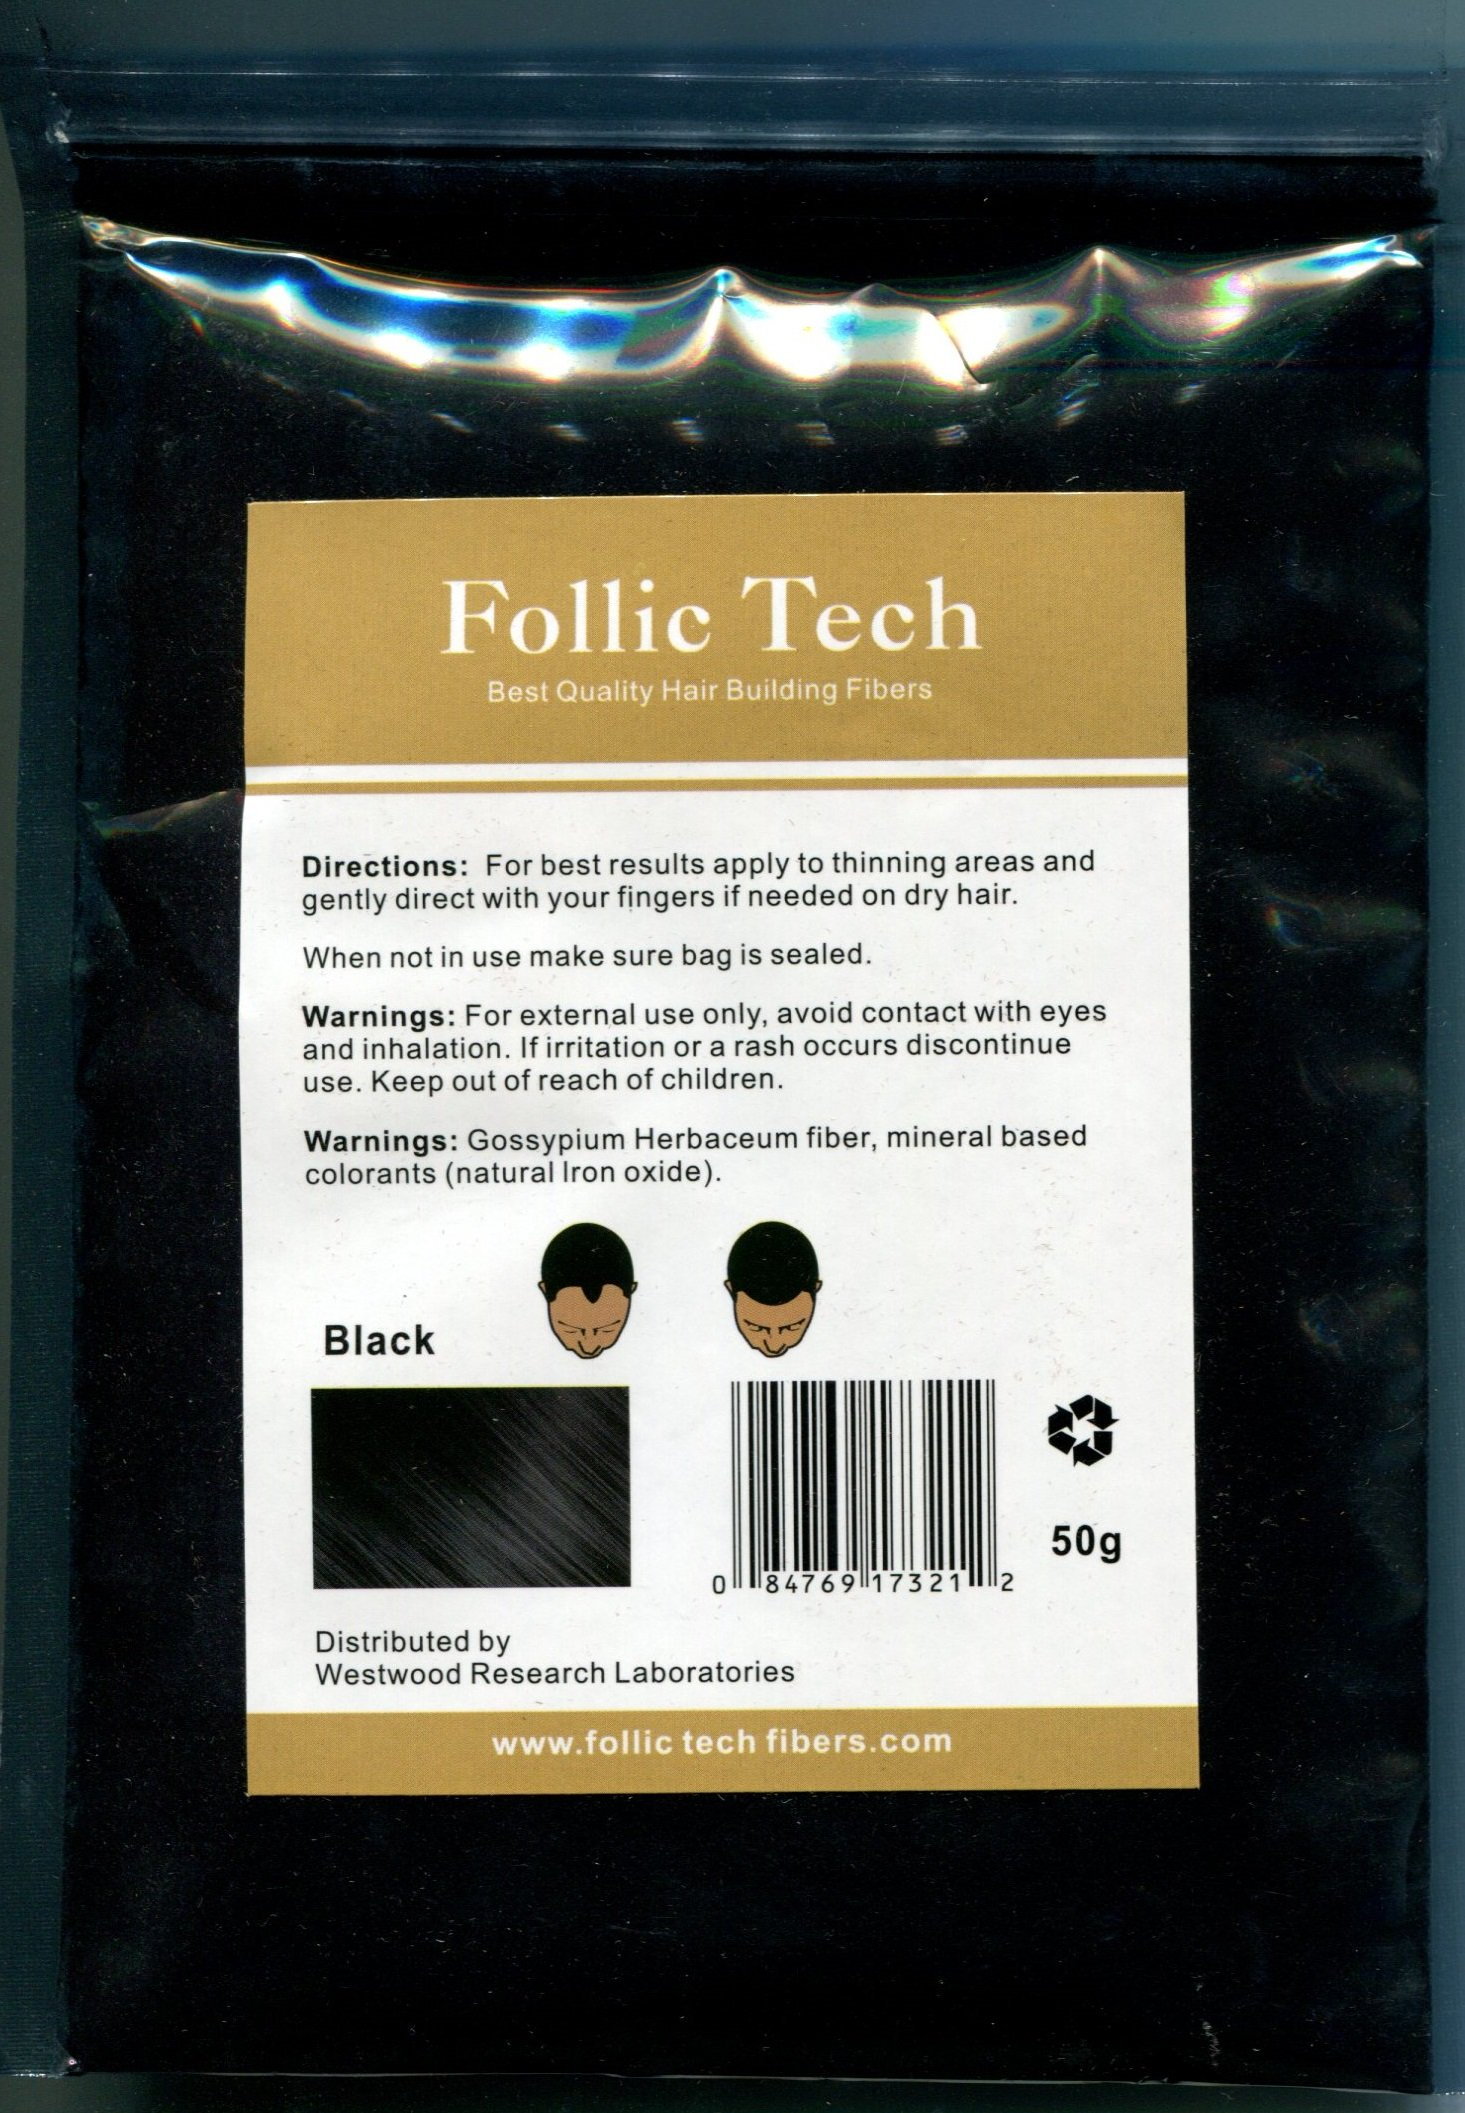 Follic Tech Hair Building Fibers 475 Grams Not 450 Highest Grade Refill That You Can Use for Your Bottles from Competitors Like Toppik, Xfusion, Miracle Hair (Black) by Follic Tech